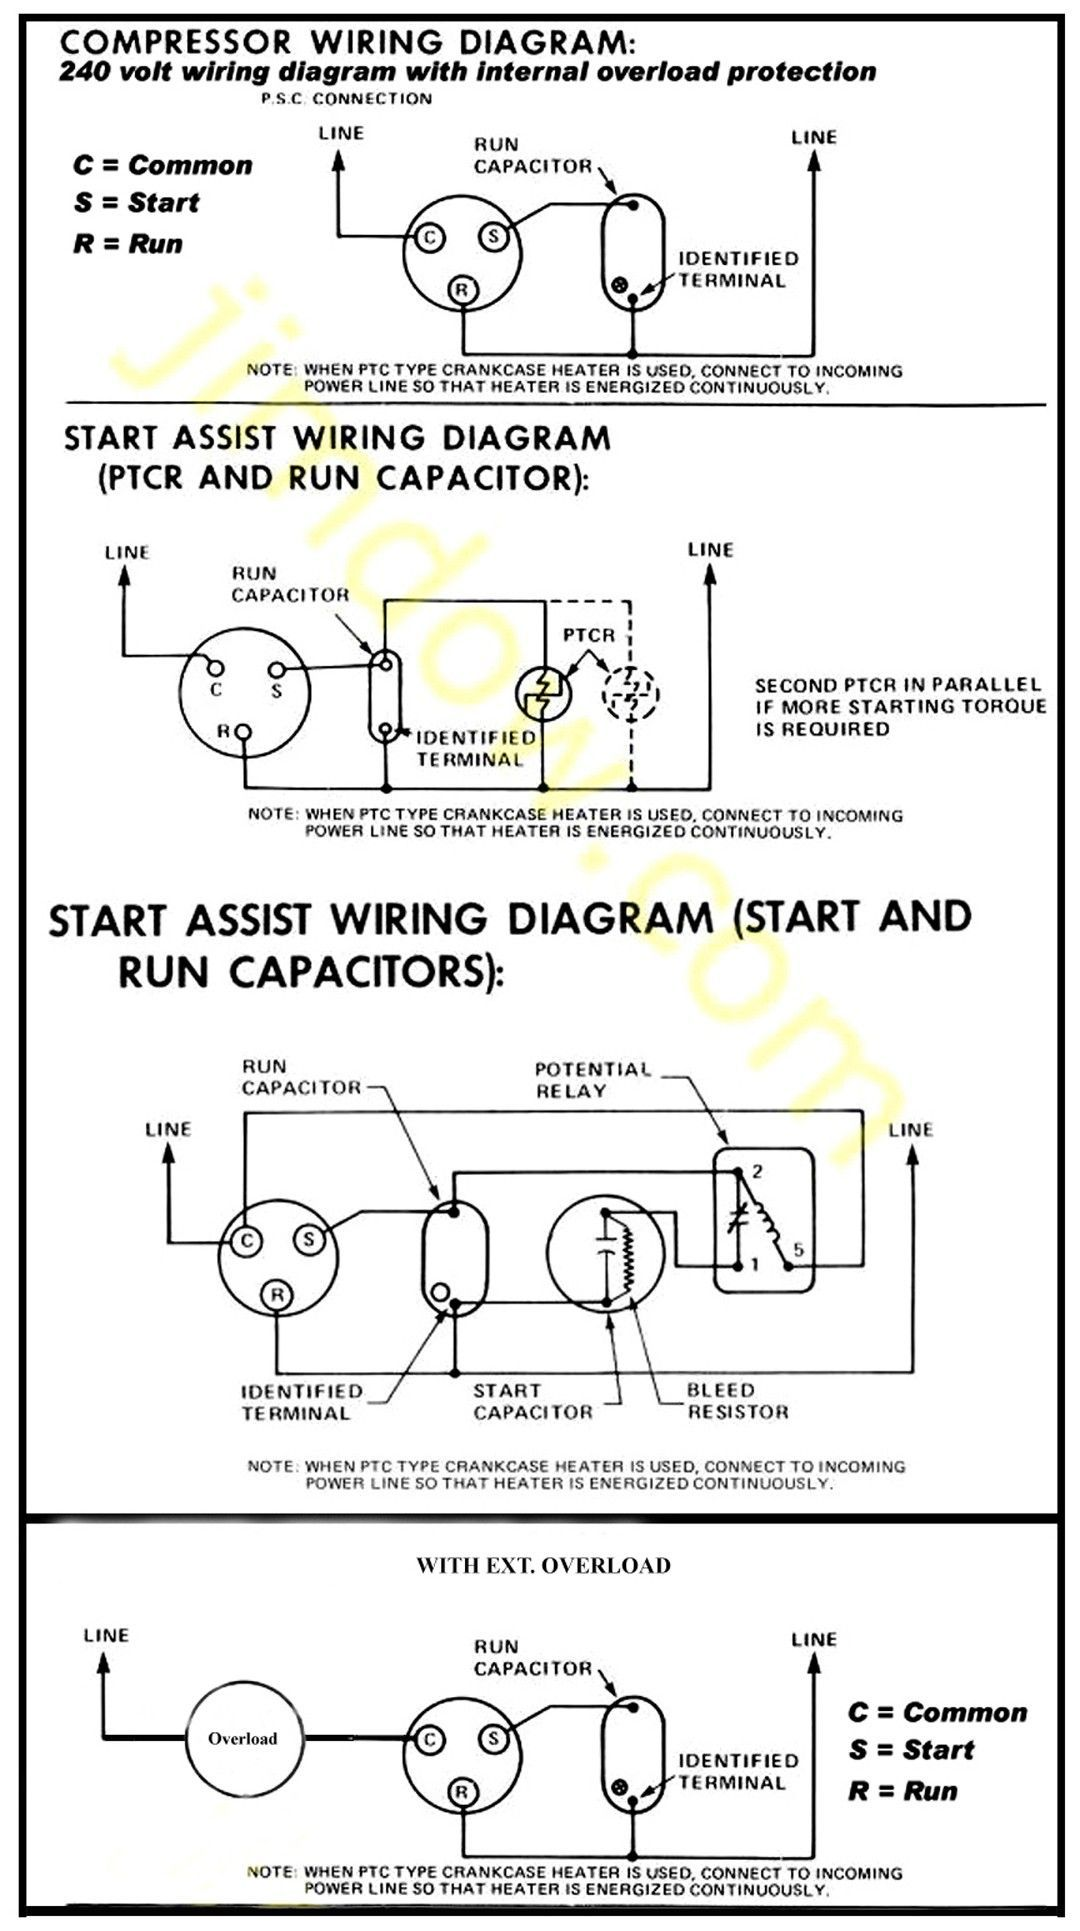 Unique Wiring Diagram Ac Split Mitsubishi Refrigeration And Air Conditioning Hvac Air Conditioning Air Conditioner Compressor